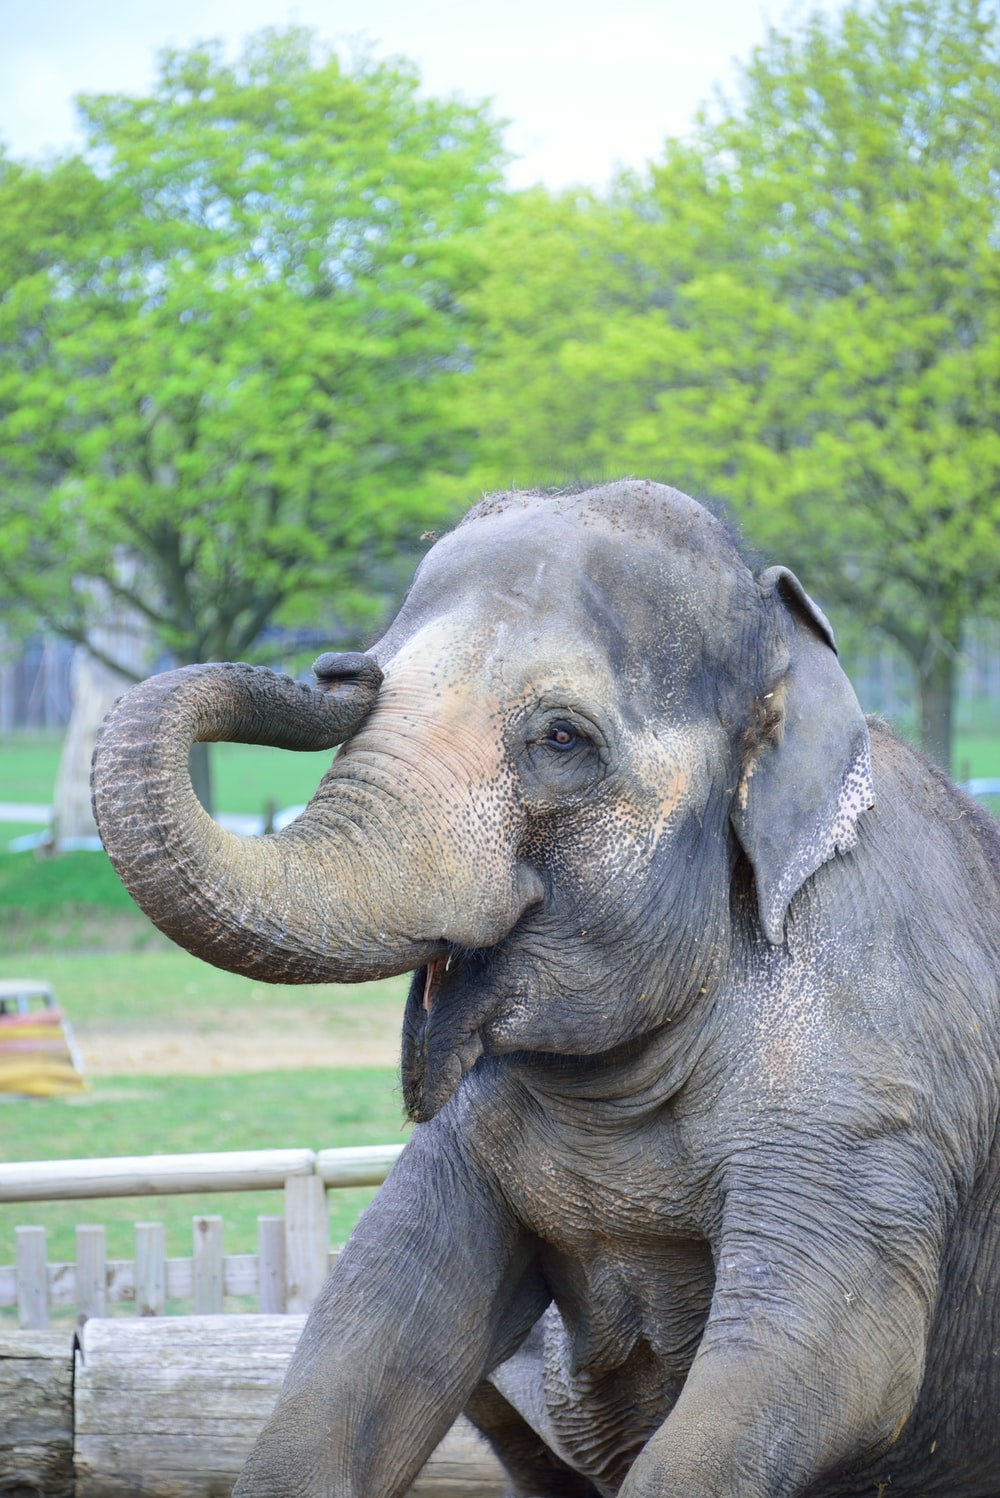 gray and brown elephant during daytime